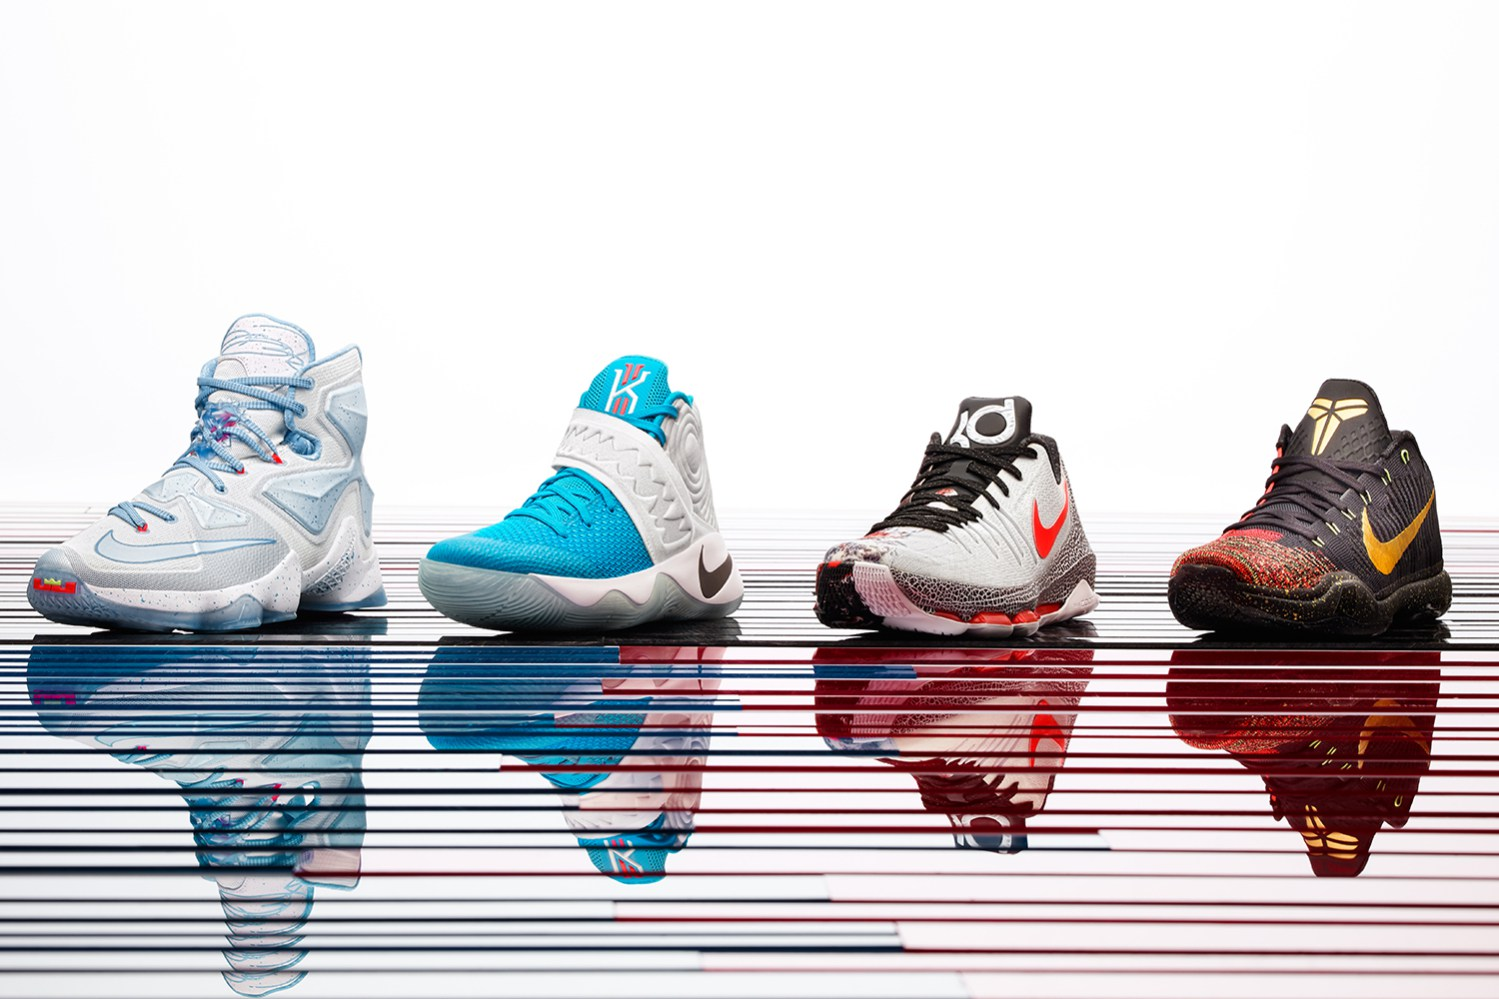 online store d97f9 fb63a The Nike Basketball 2015 Christmas Collection is Fire and Ice